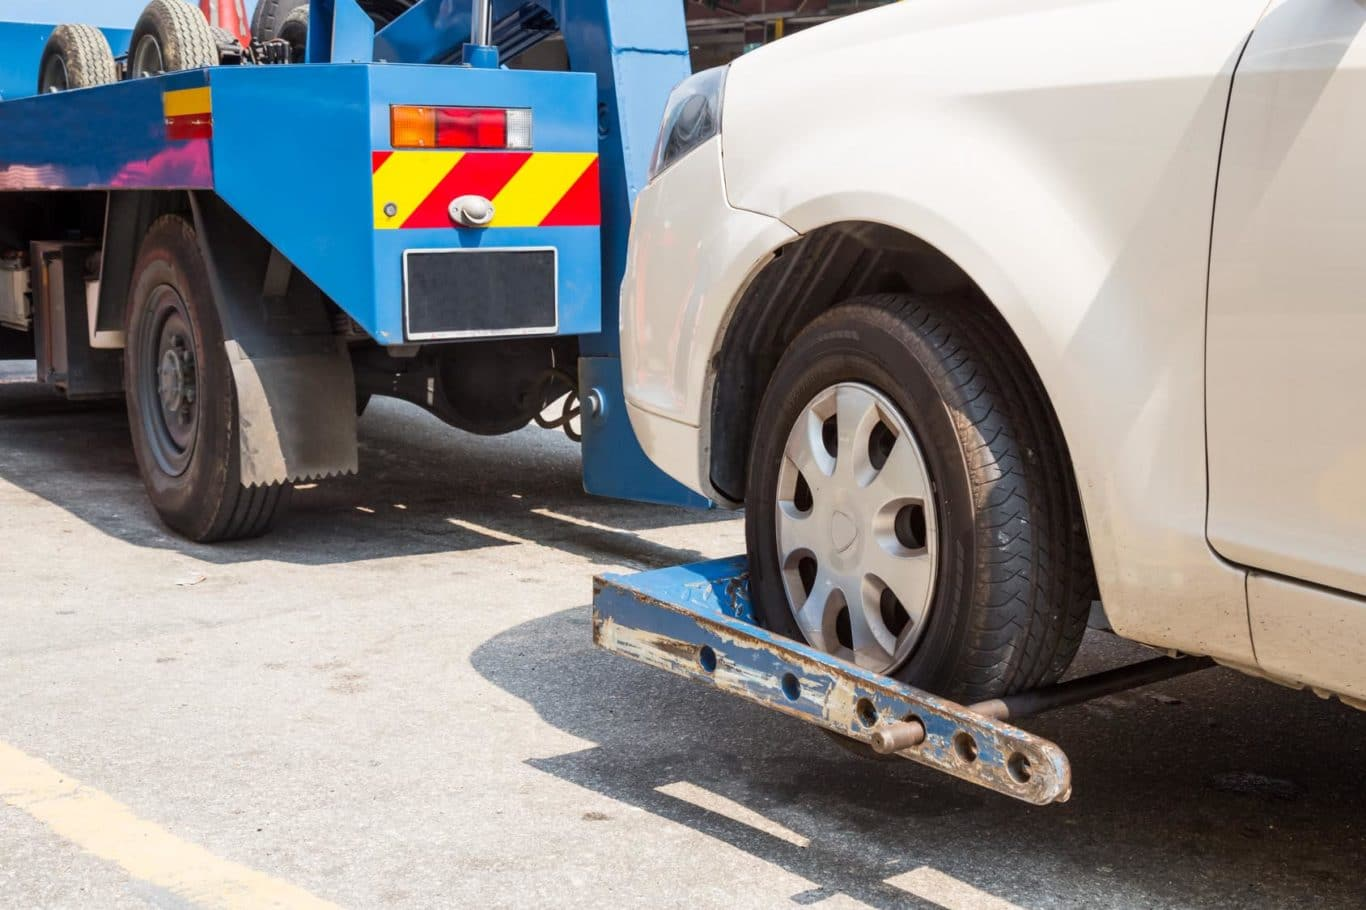 Harold's Cross expert Car Towing services